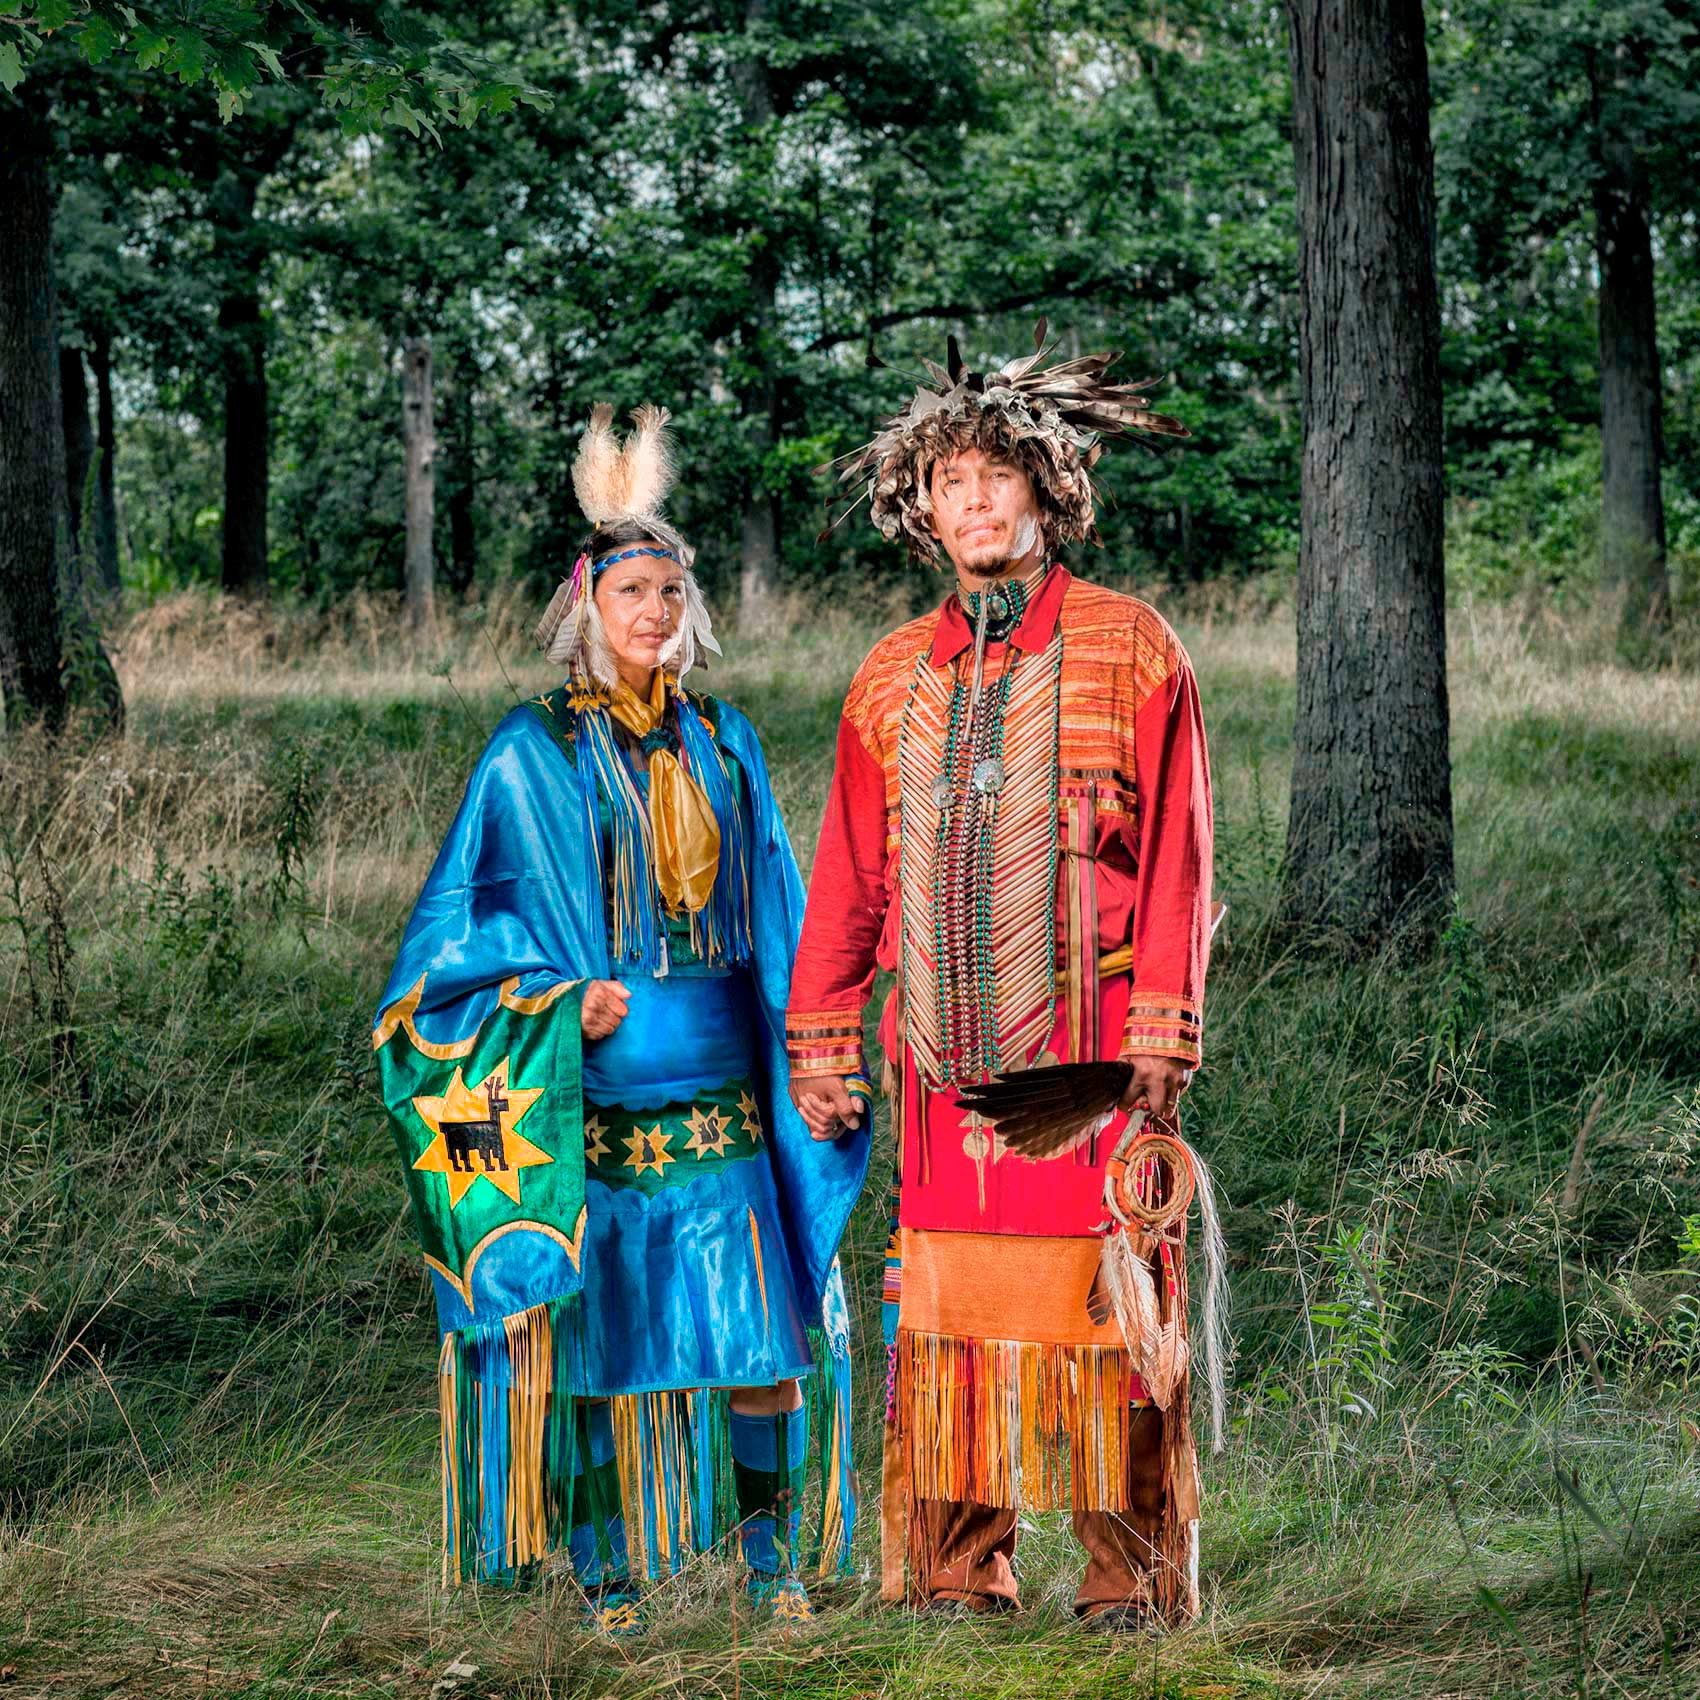 a-canadian-aboriginal-couple-stand-together-in-the-woods-wearing-ceremonial-clothing